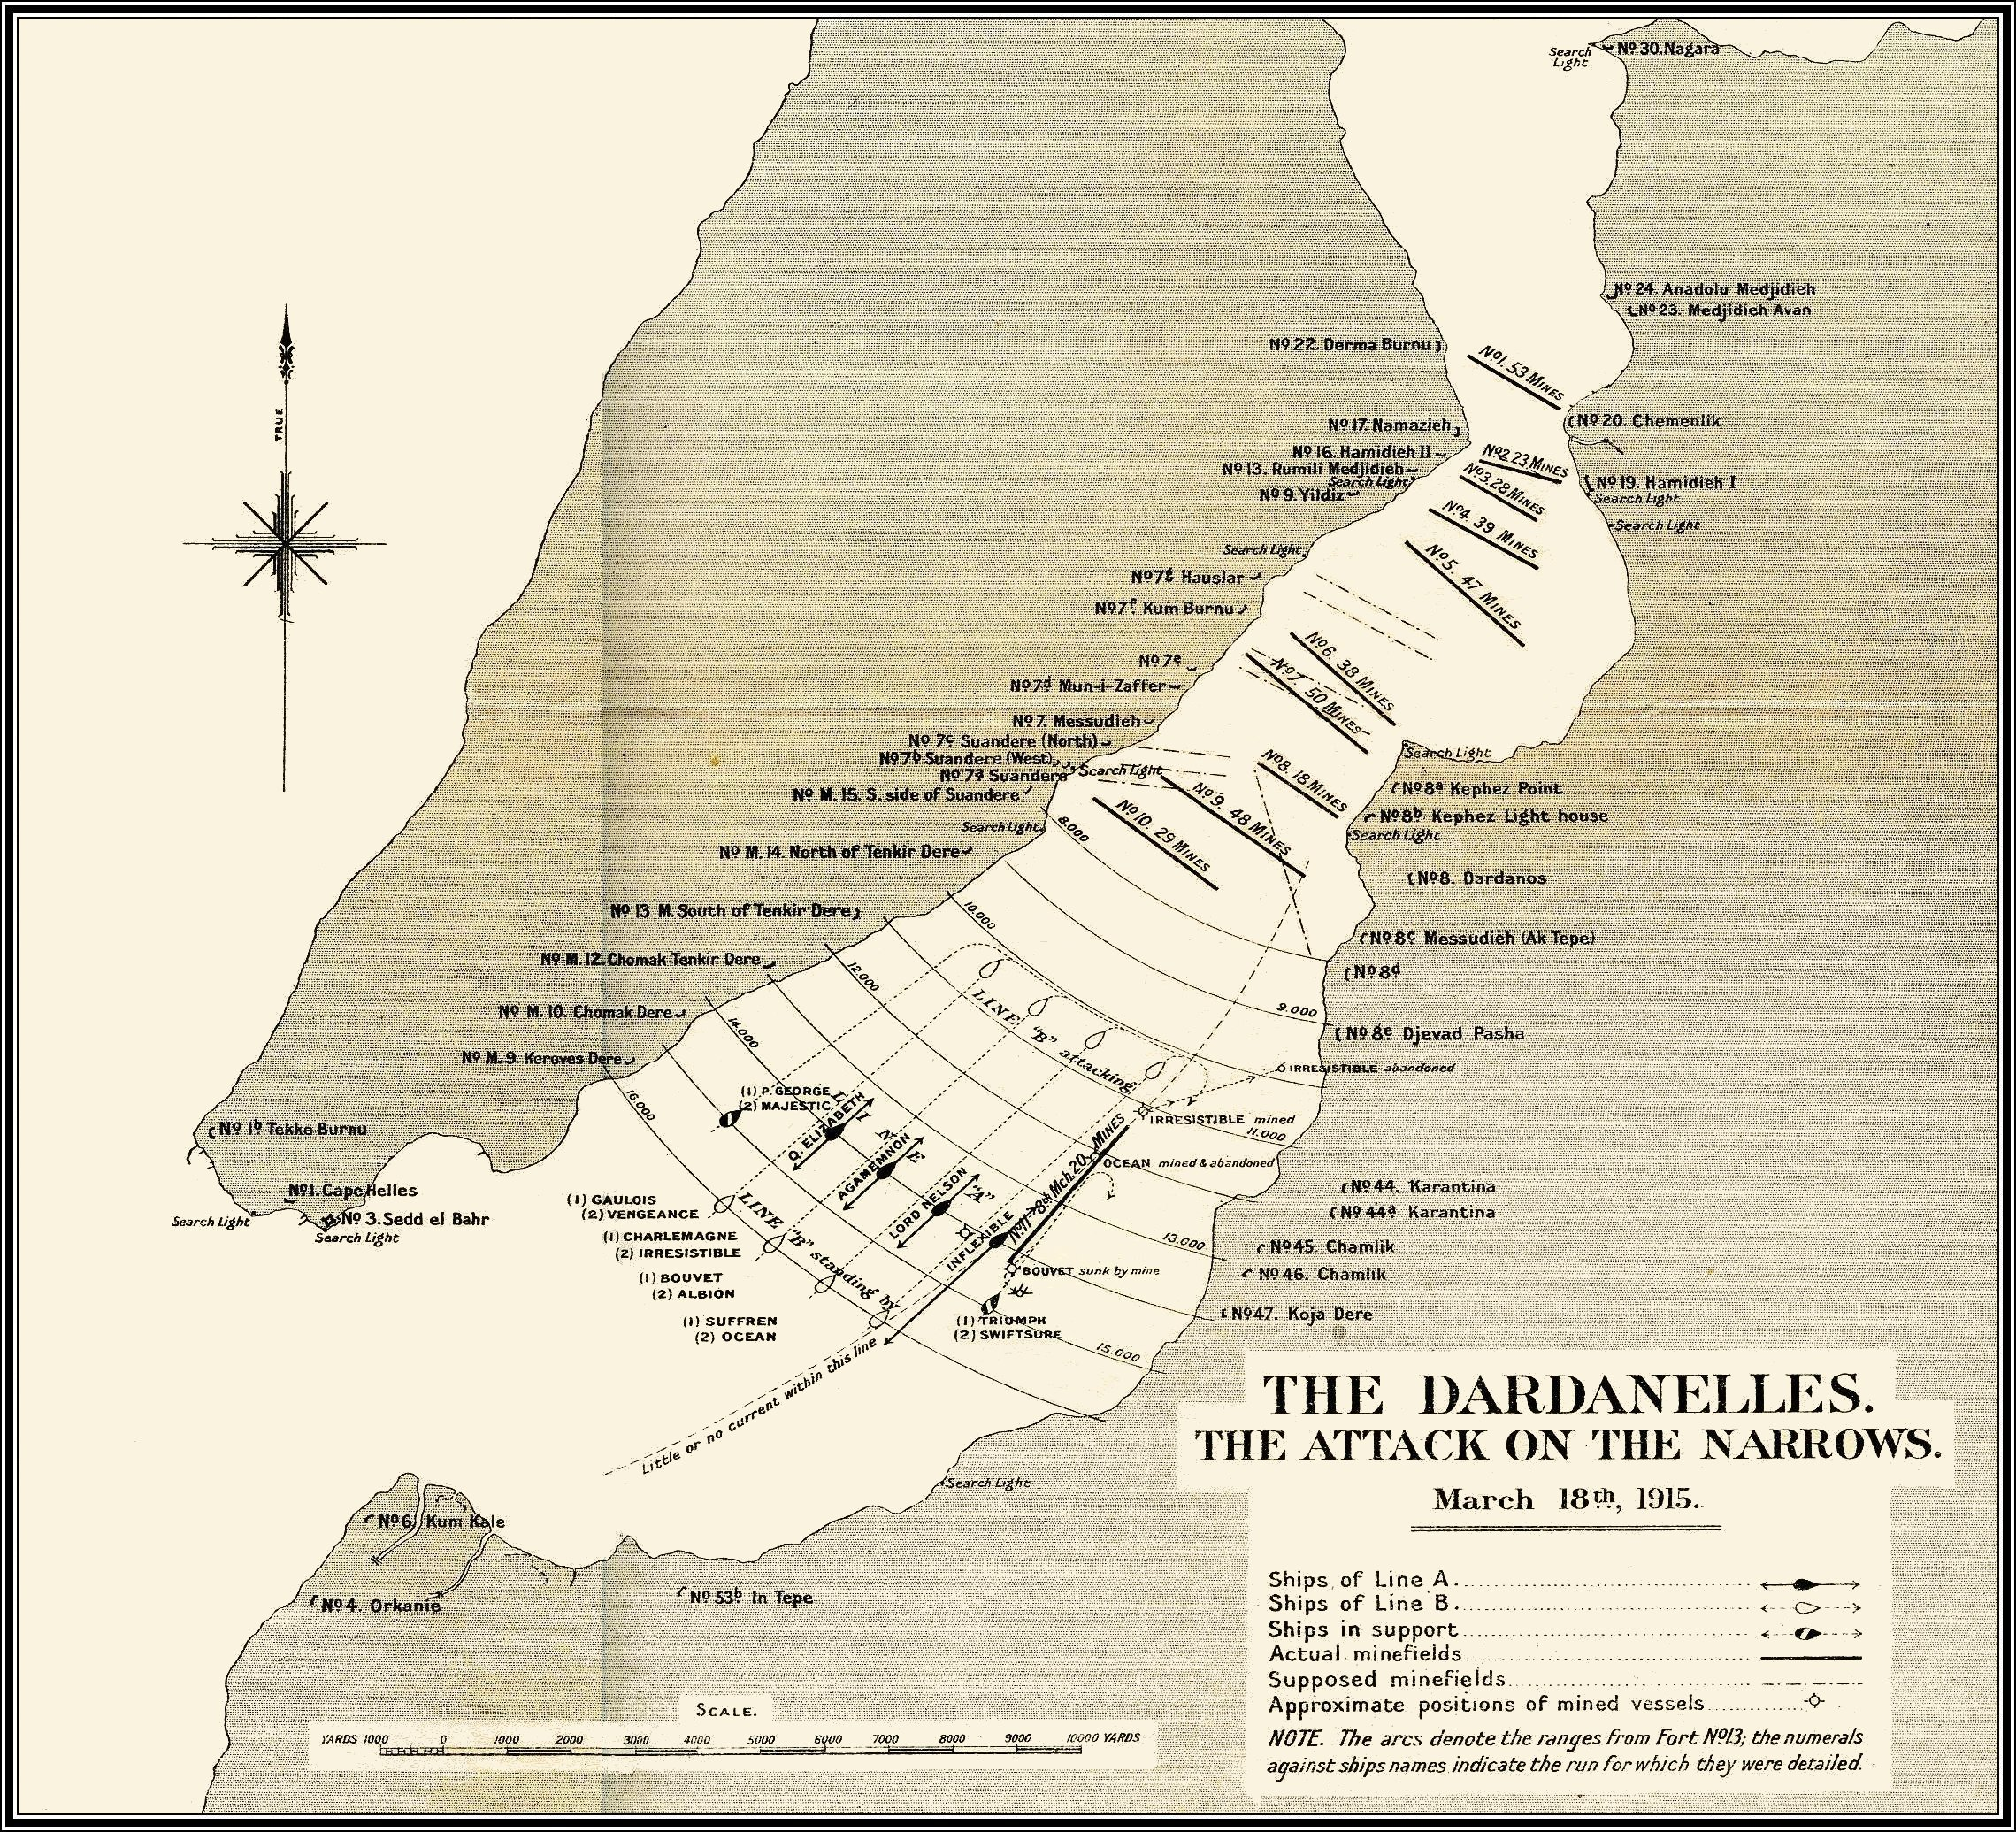 Map of Dardanelles Attack